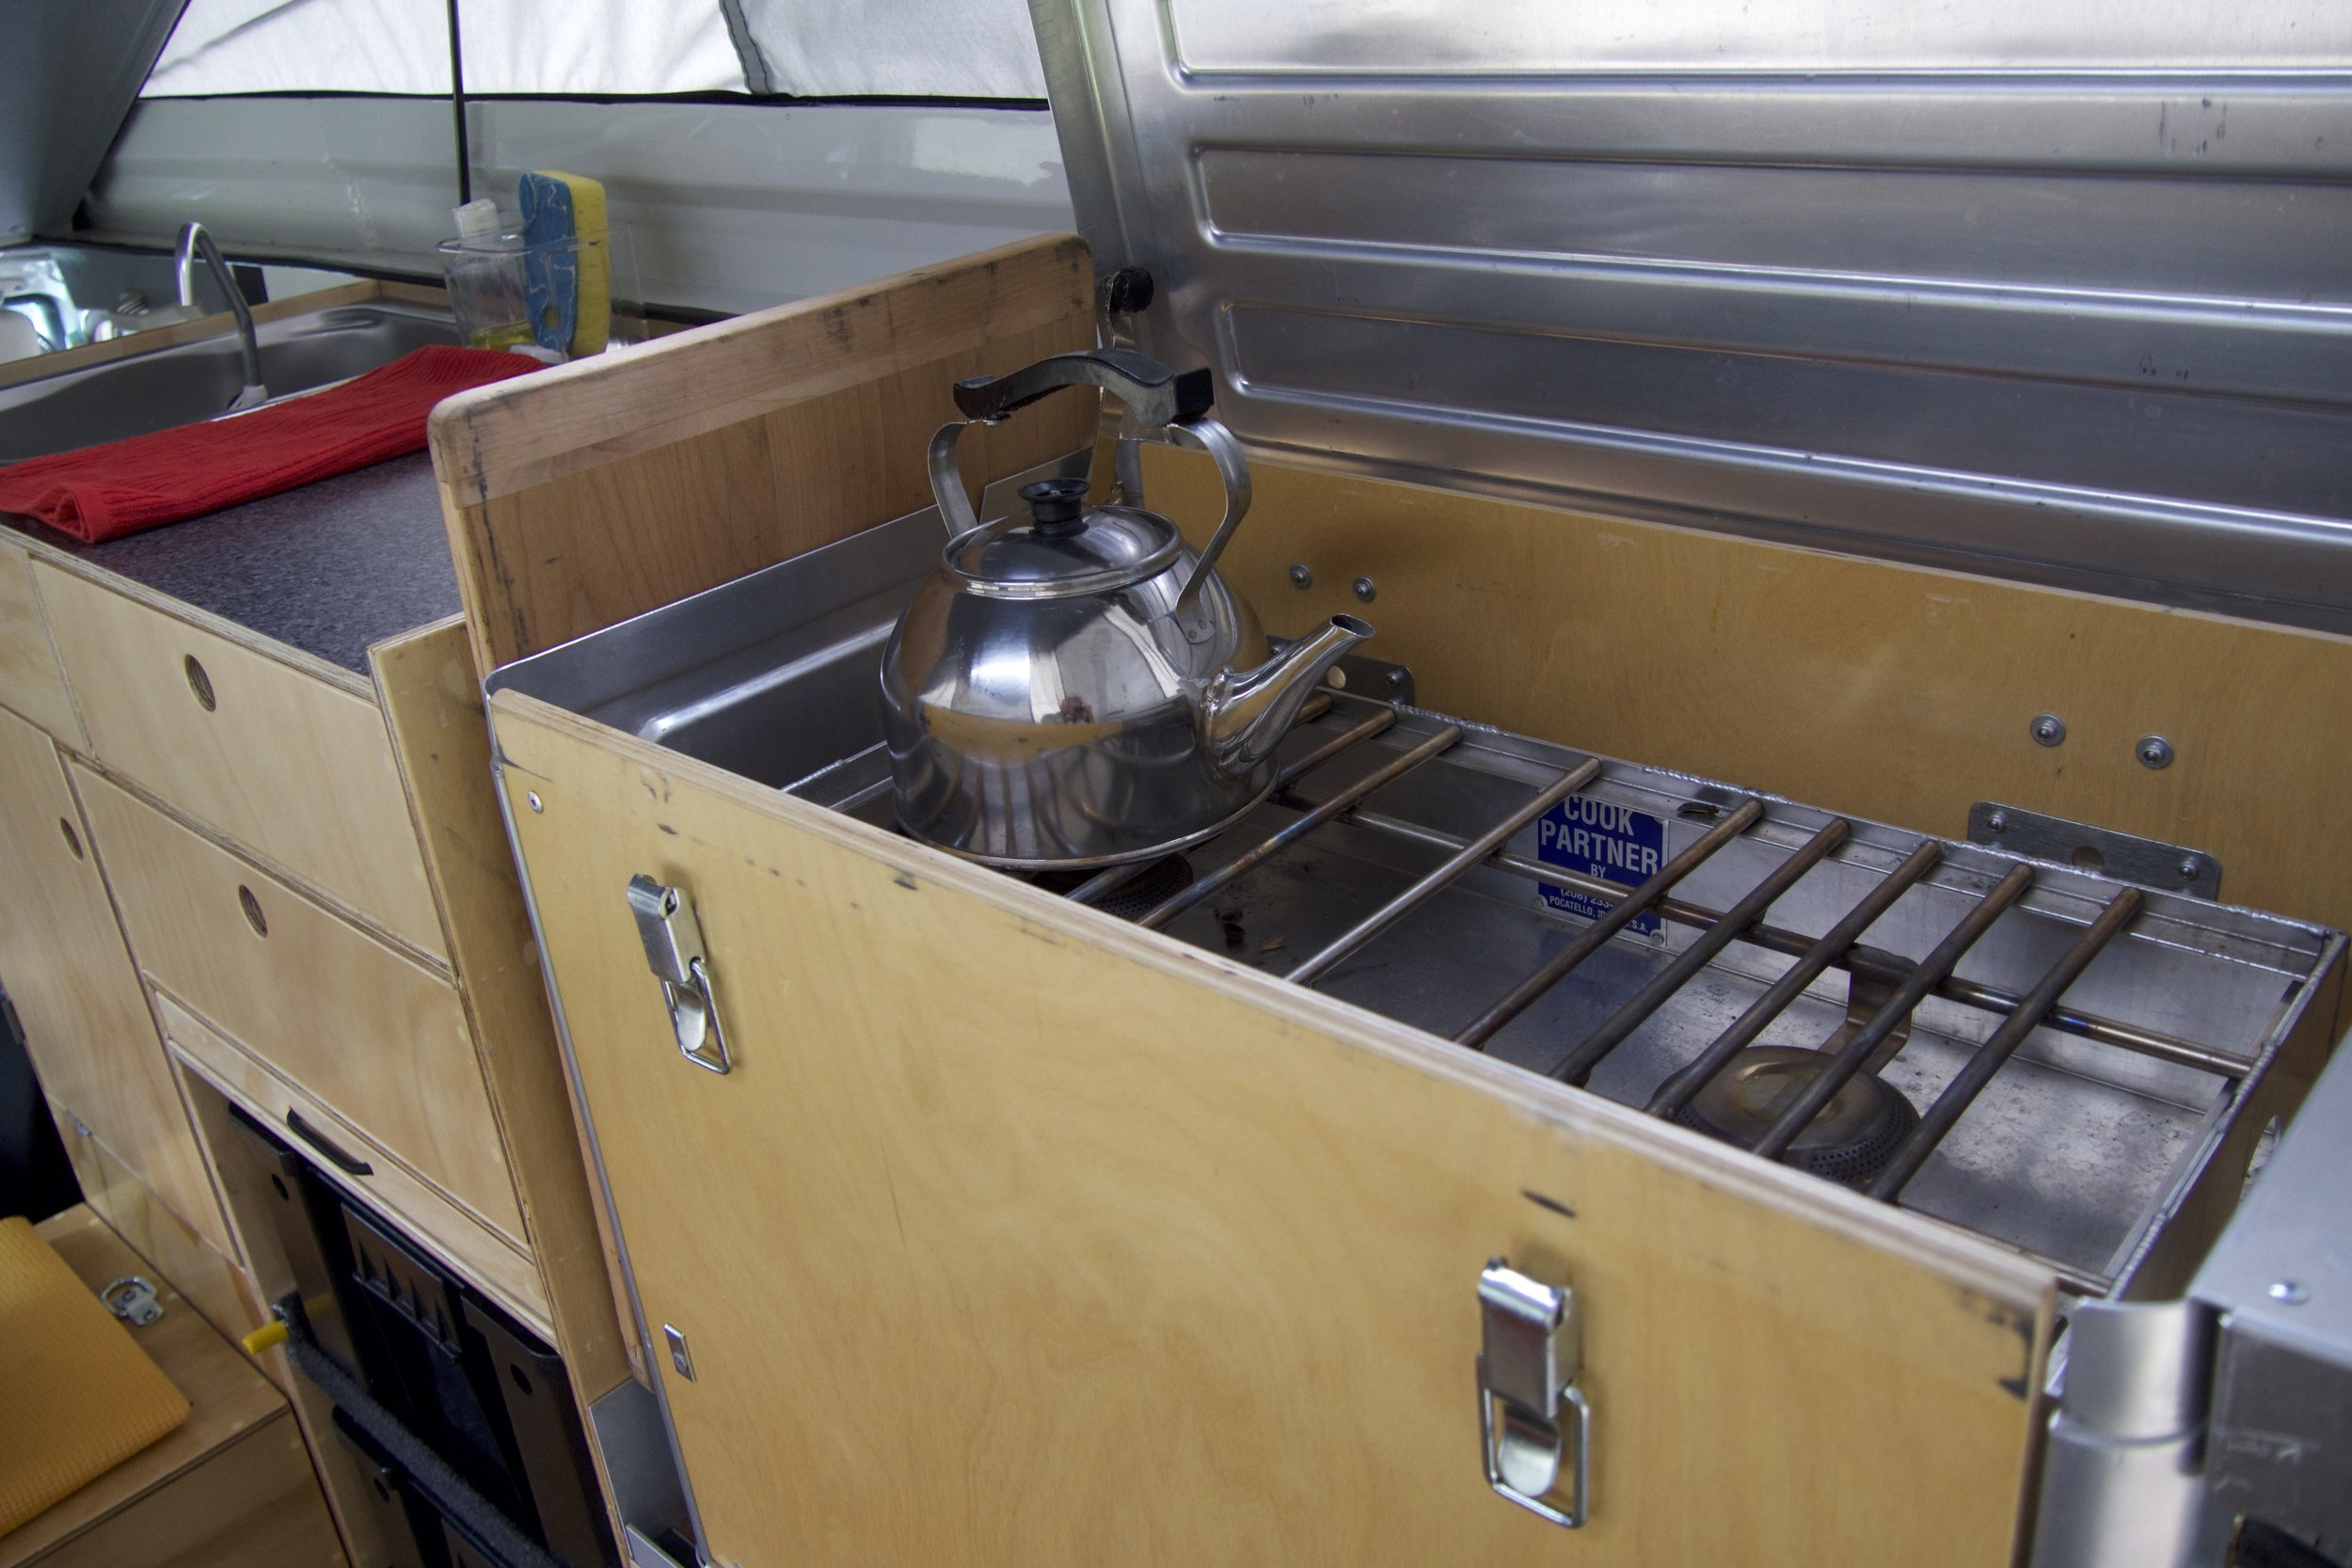 This photo shows the wood front of the Kanz closed; it is dropped for cooking.